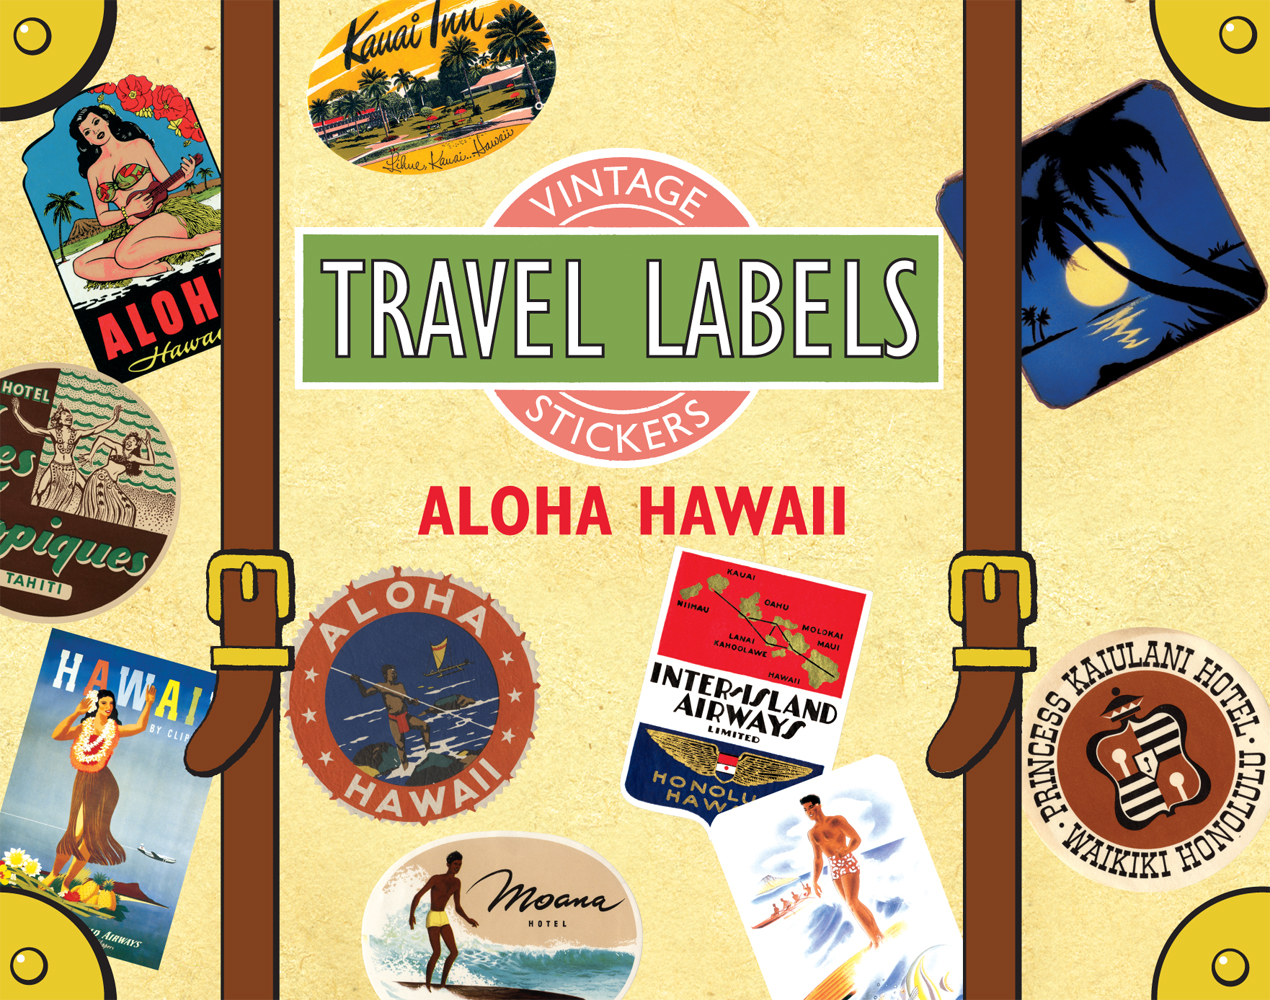 Aloha Hawaii Travel Labels This box contains 20 individual peel-and-stick labels that are suitable for scrapbooking, decoupage, gift wrapping and wherever your stickering imagination takes you.'  Aloha, vintage image lovers! Hawaii, the vacation mecca of the Pacific, may be the last state to enter the Union, but it is a leader in the category of natural beauty.' All the icons we associate with a vacation in this island paradise  surfers, hula dancers, palm trees, an abundance of tropical flora  are represented in this selection, culled from our treasure trove of vintage travel ephemera by our kahunas of images.